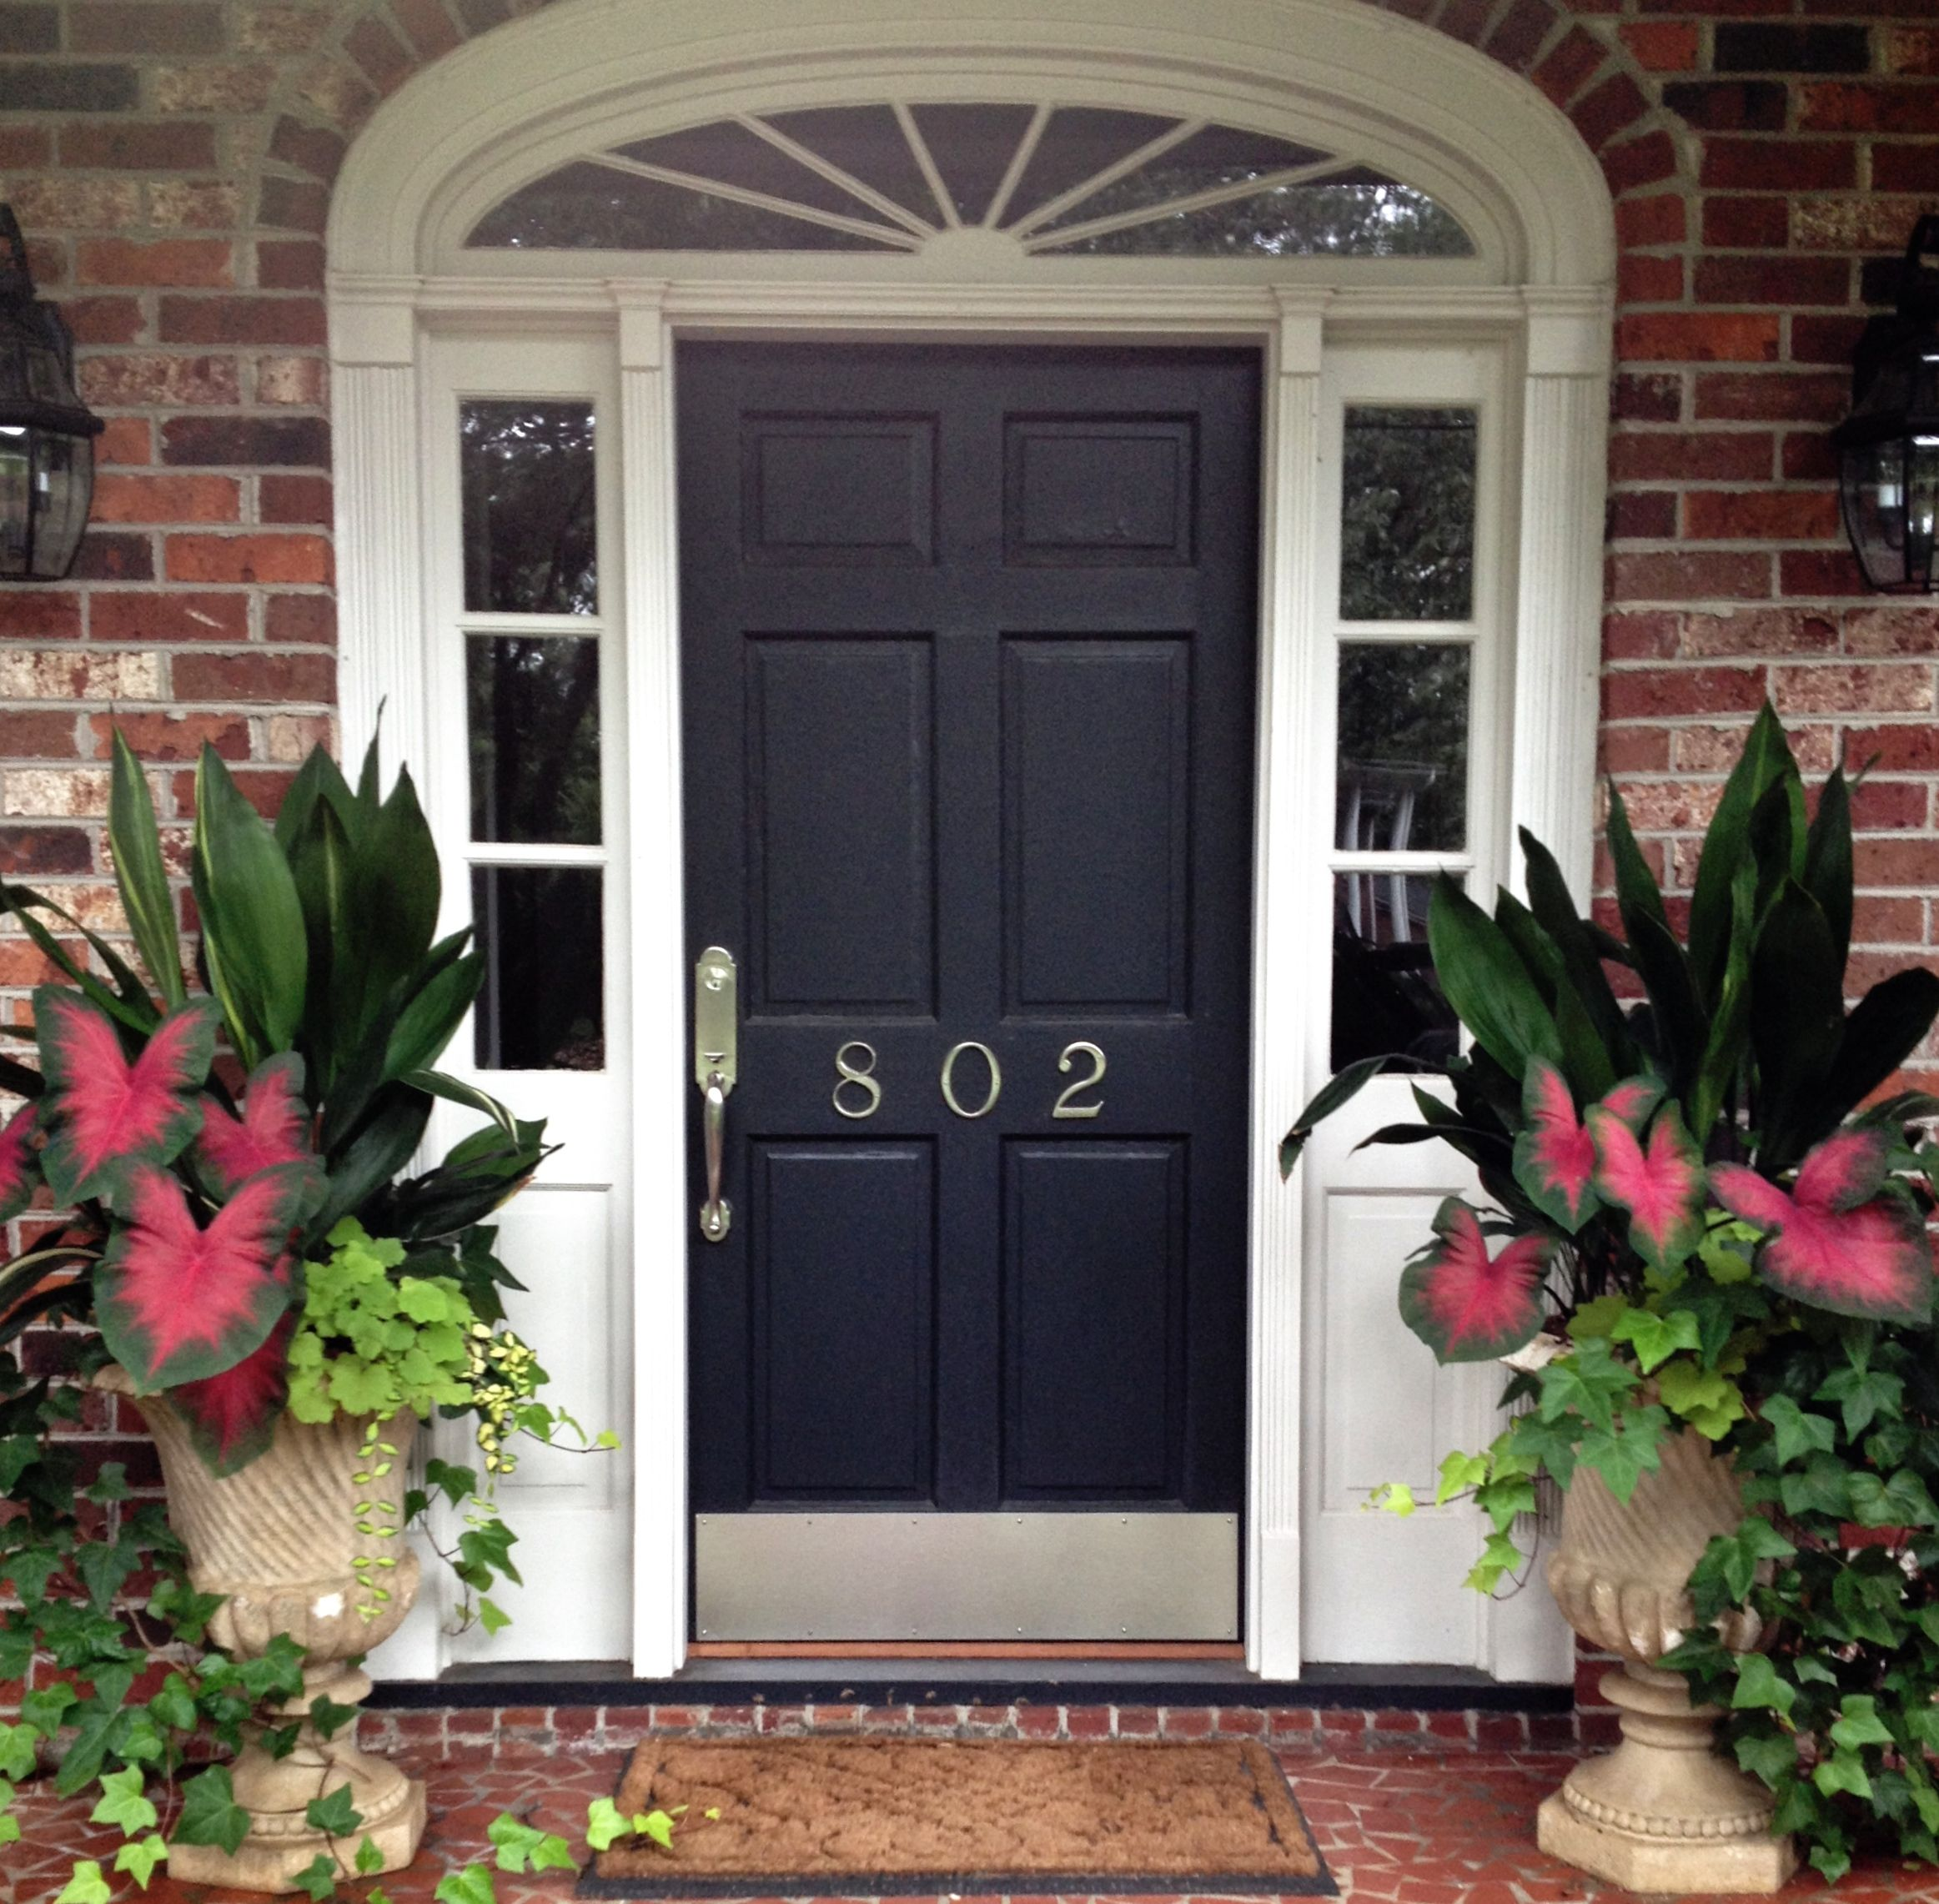 Front porch container gardening ideas - Shady Combo Cast Iron Plant Caladium Cora Bell English Ivy Perfect